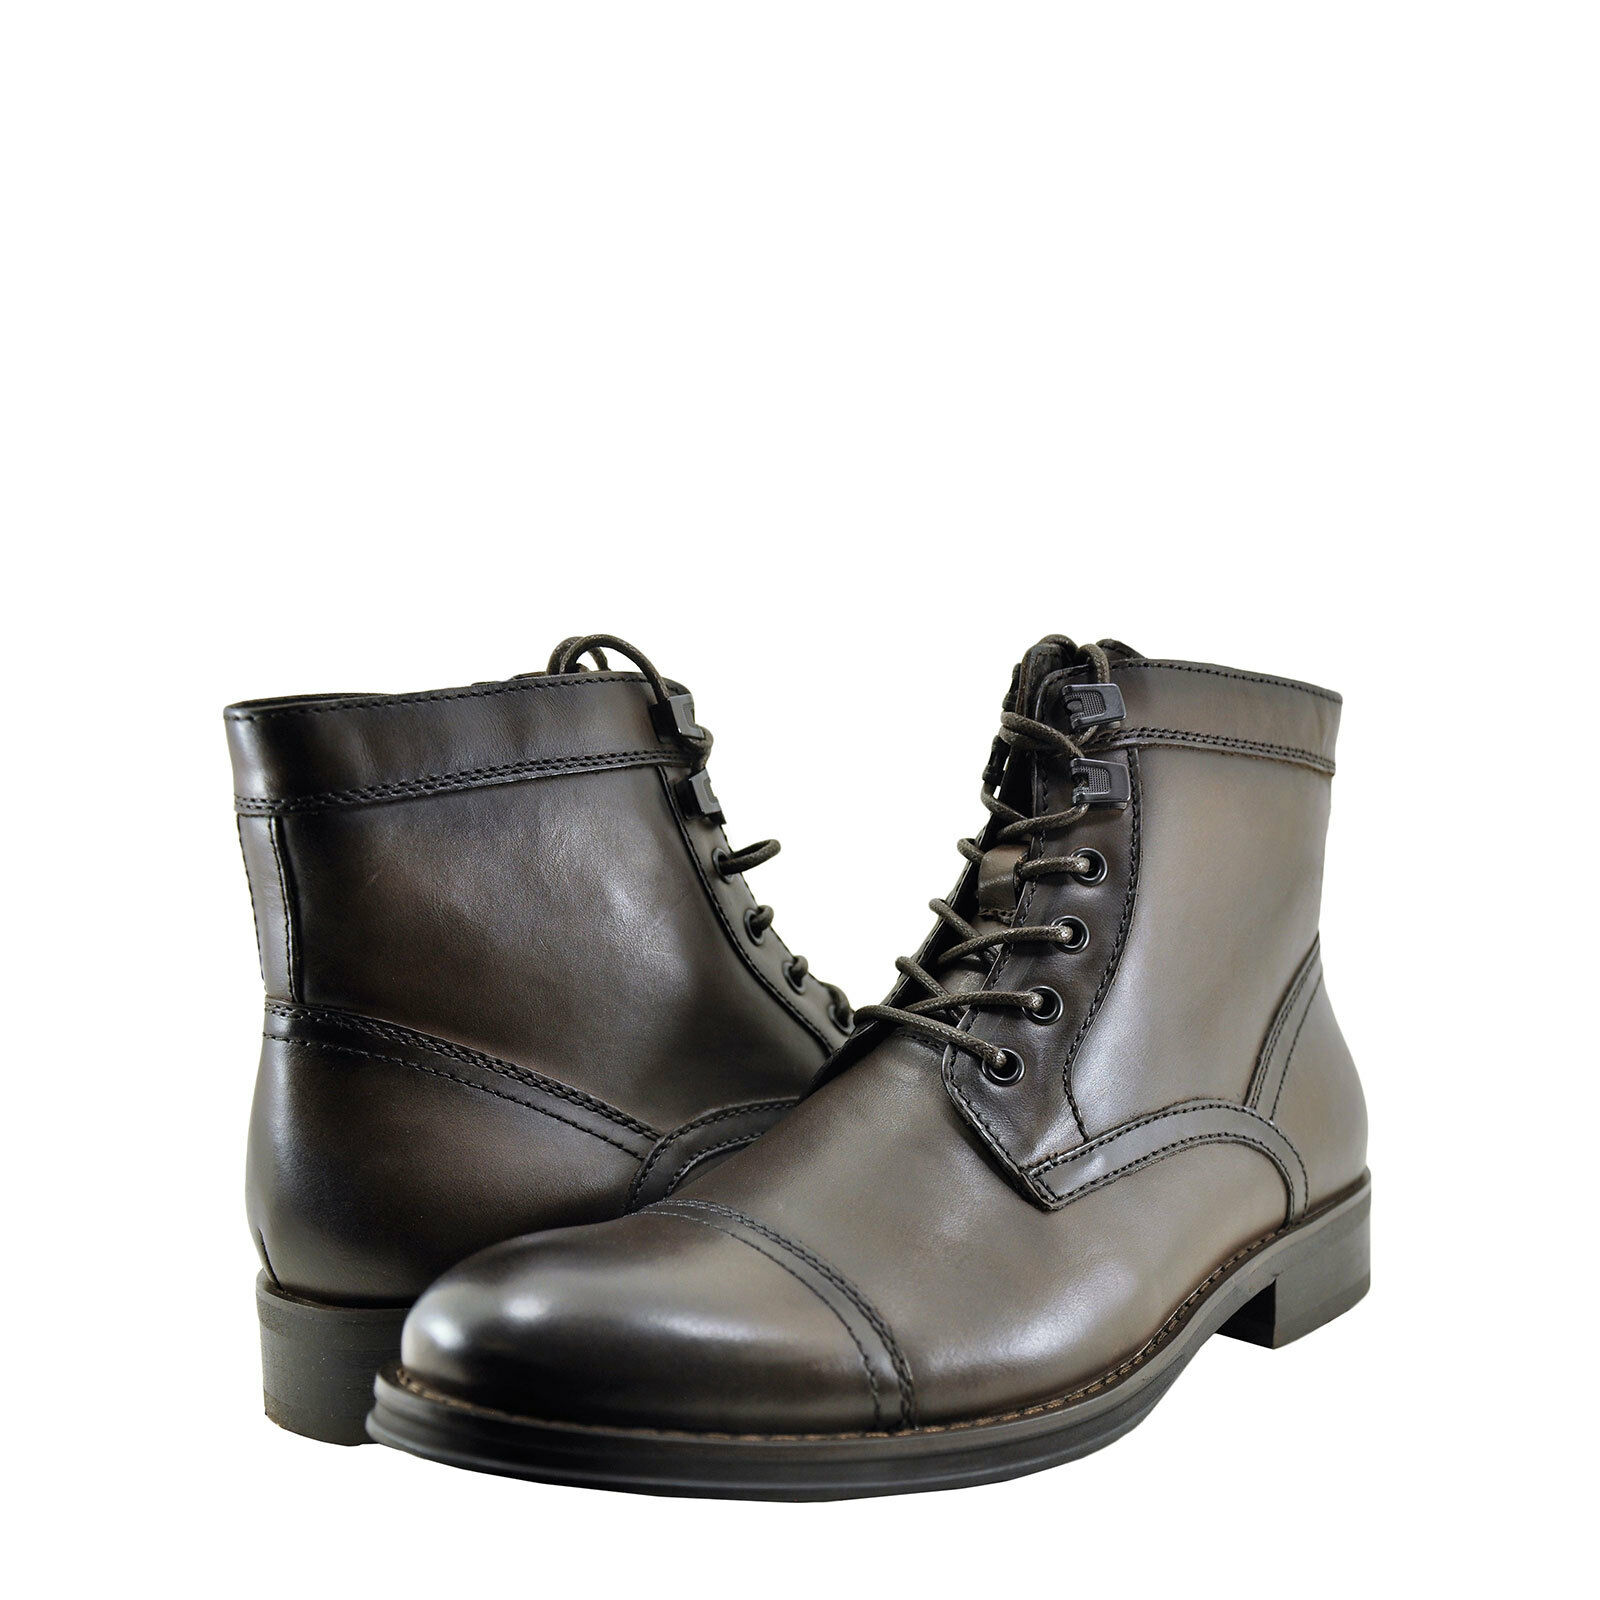 Mens shoes Kenneth Cole Design 104352 Lace Up Boot KMF7LE044-202 Dark Brown New